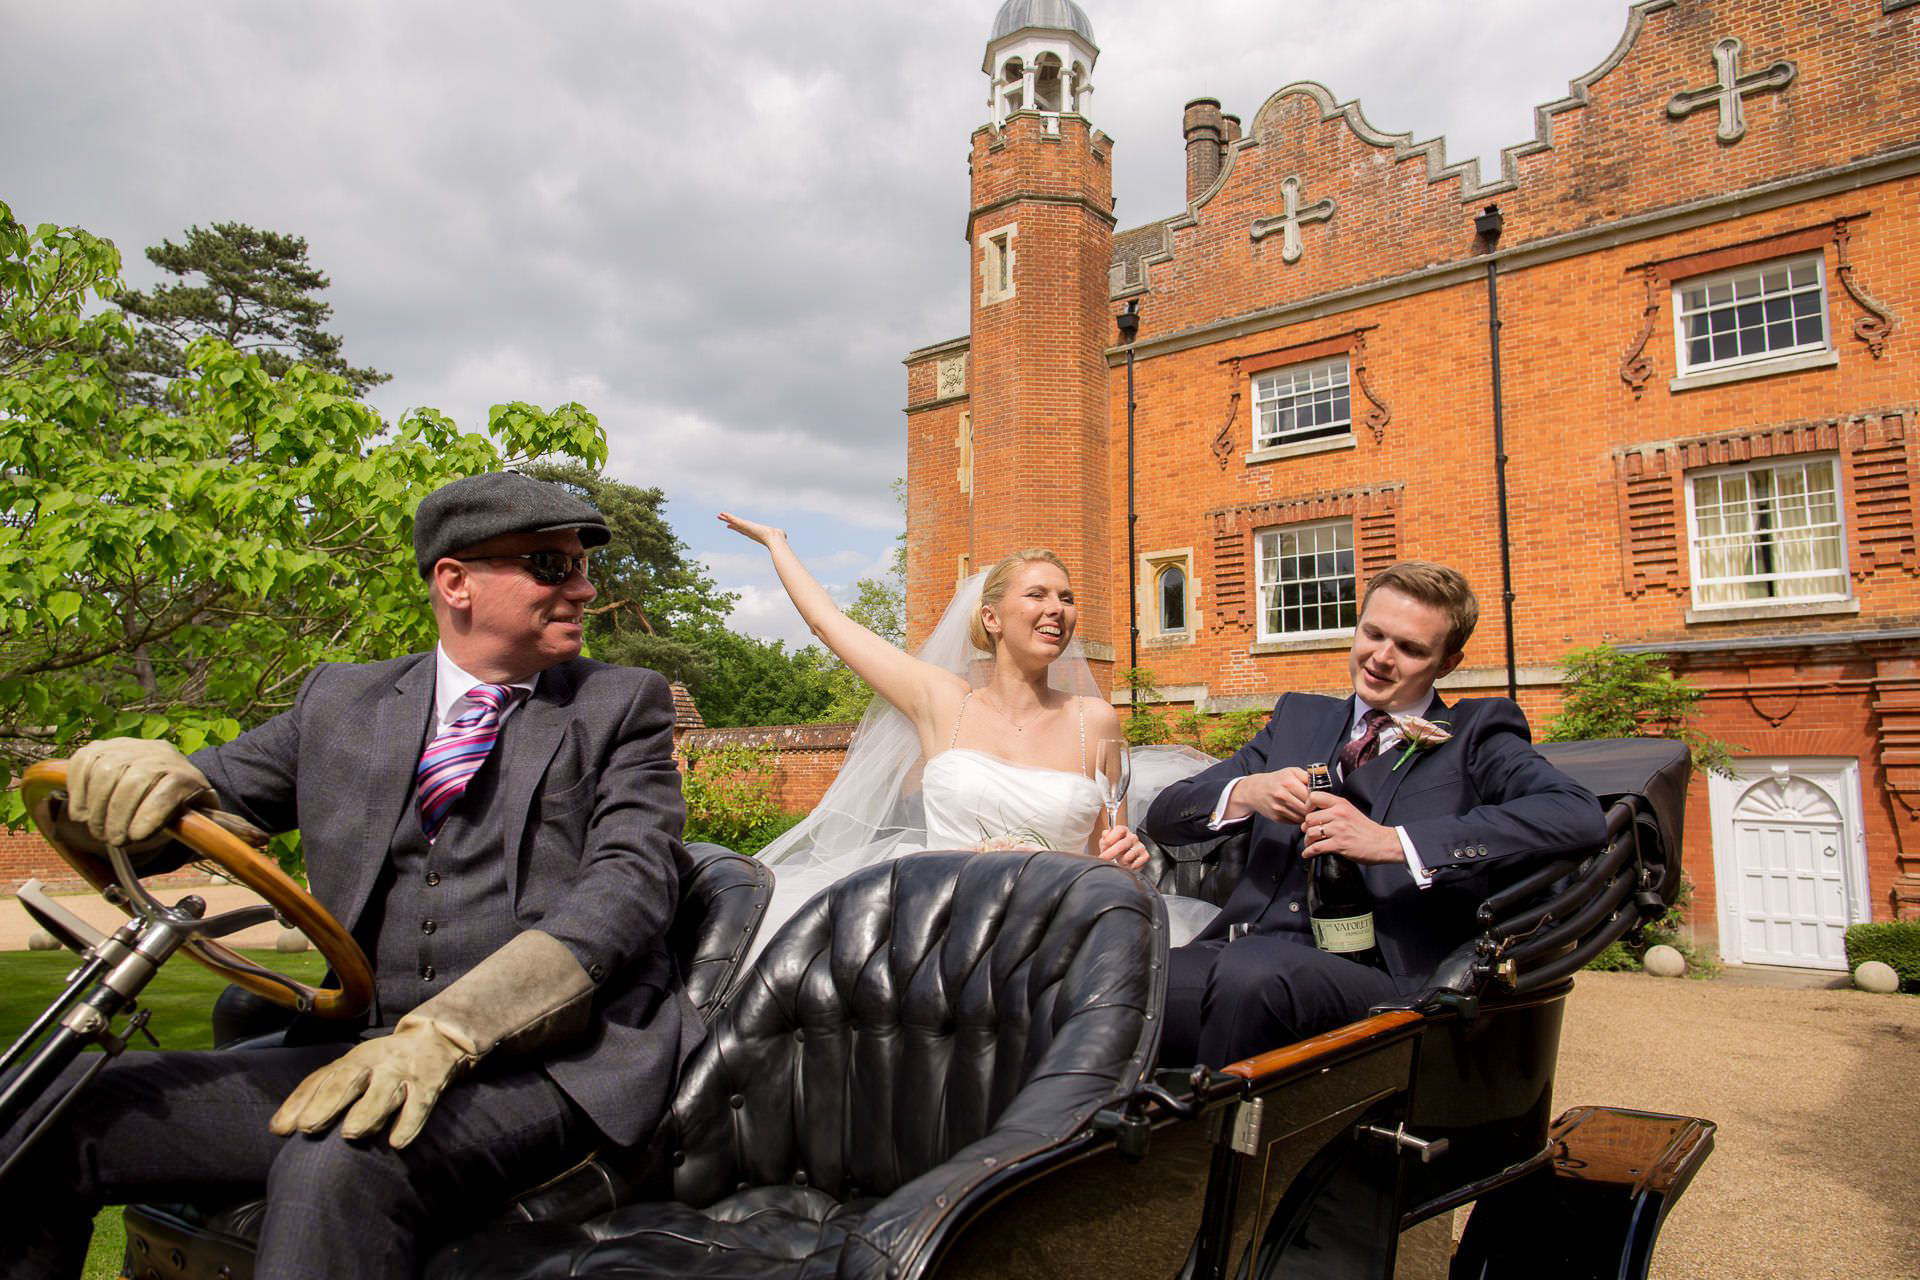 Surrey Wedding bride and groom drinking champagne on the vintage car